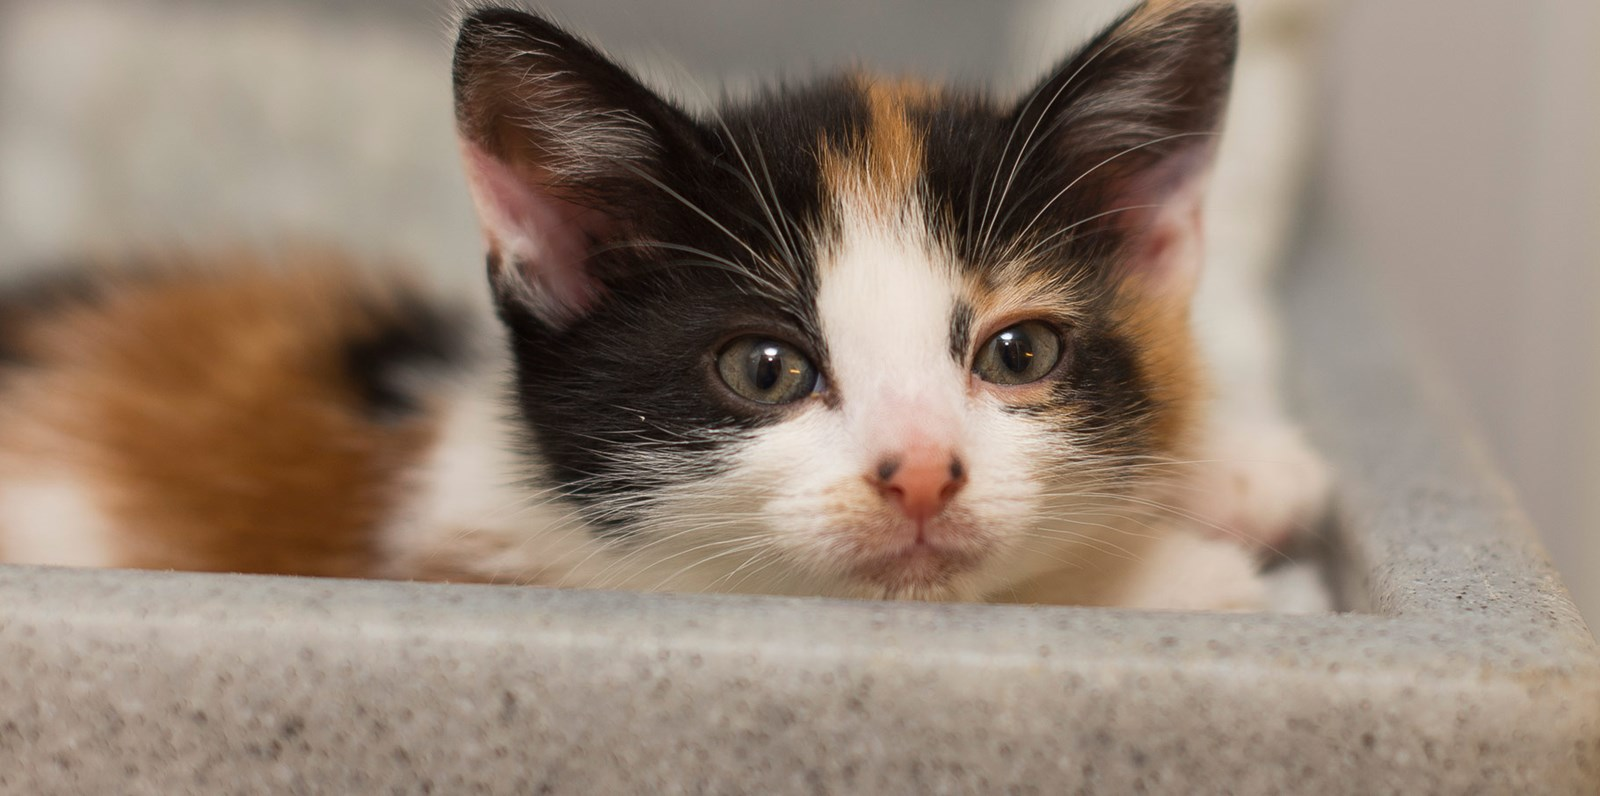 Kitten with ginger, black and white fur